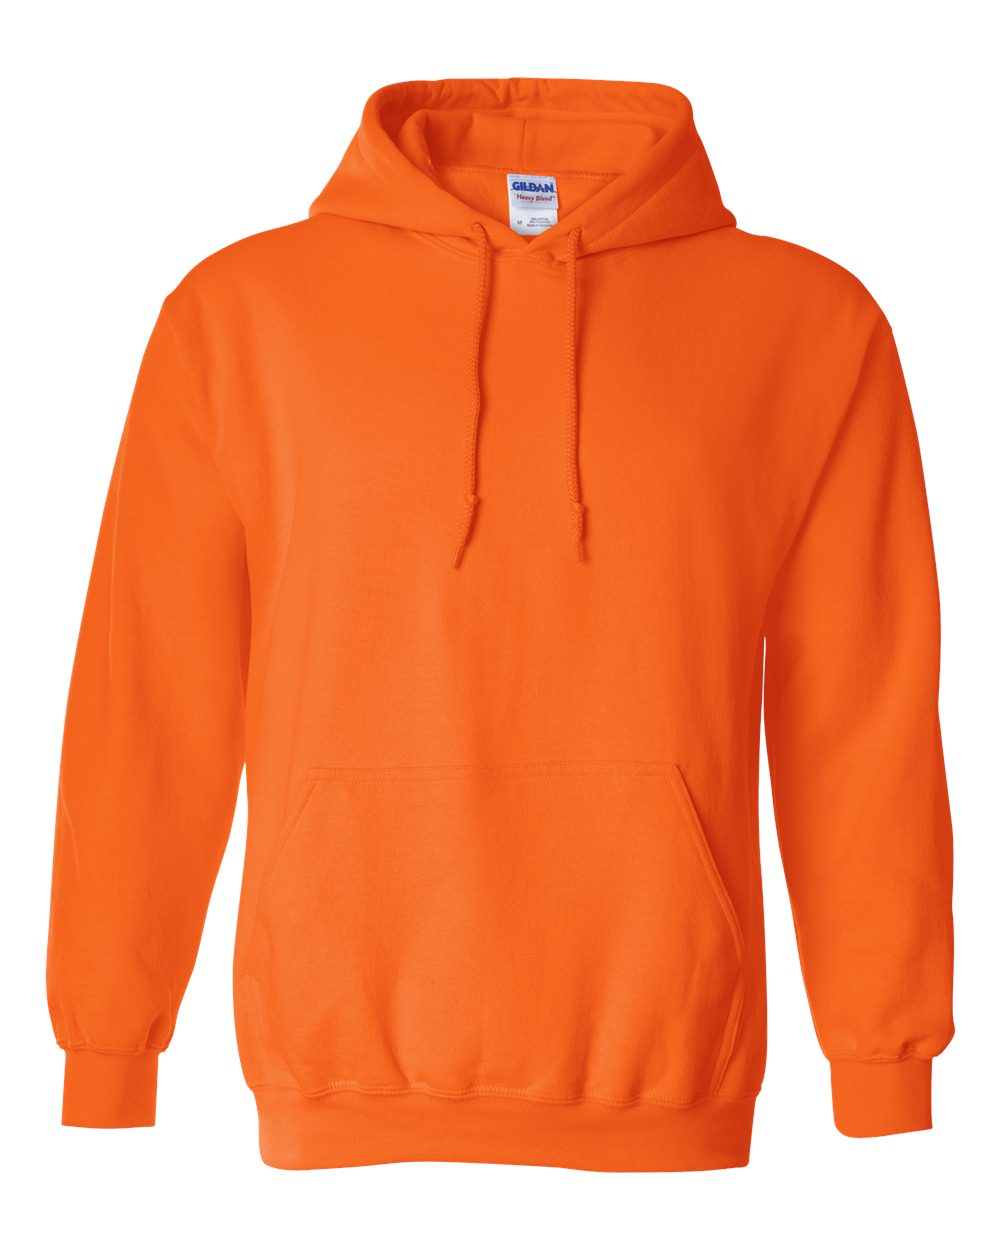 Gildan_18500_S._Orange_Front_High.jpg